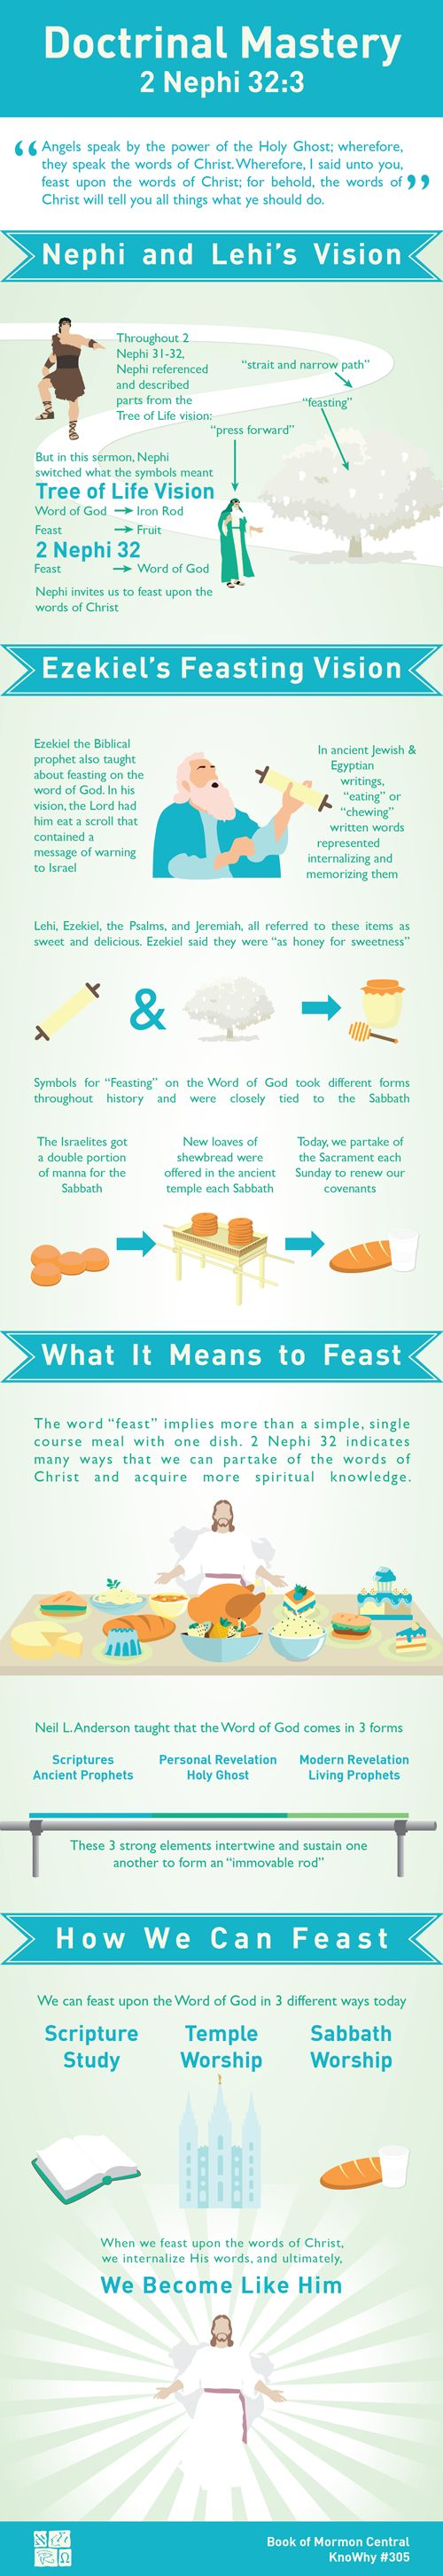 Doctrinal Mastery 2 Nephi 32:3 Infographic by Book of Mormon Central